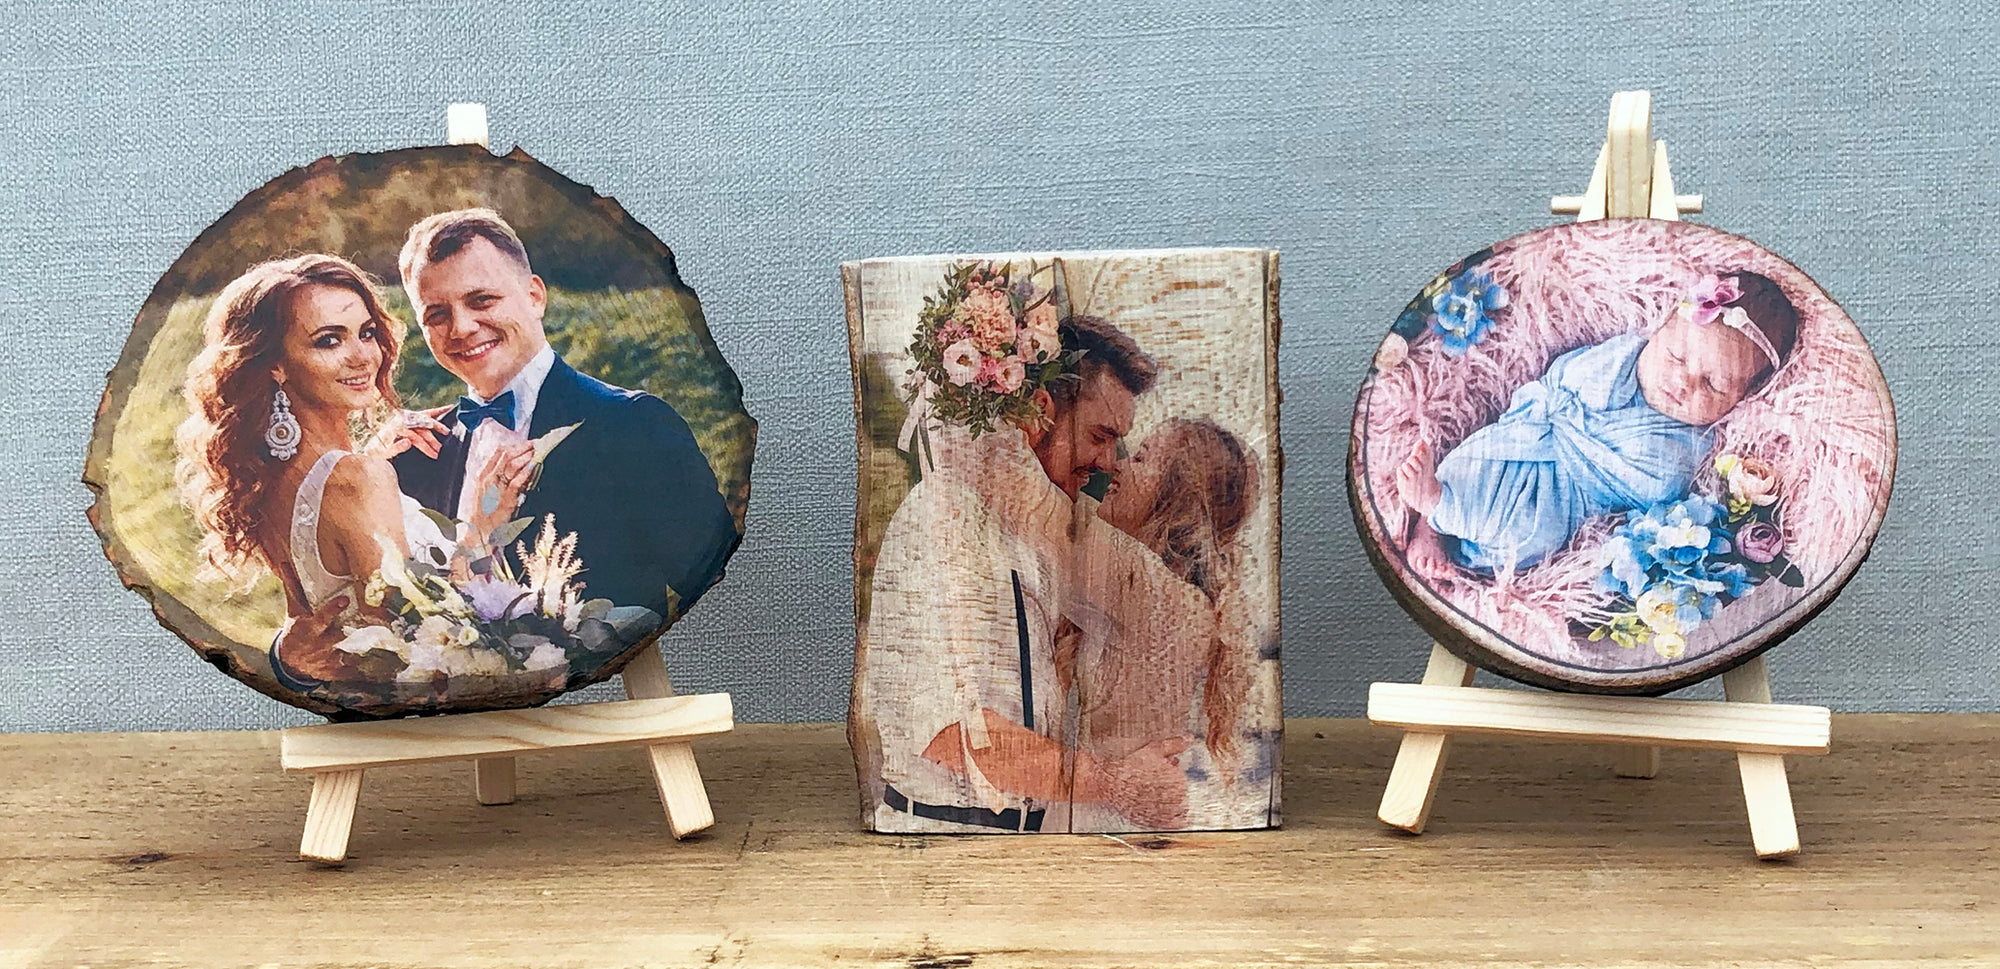 A wood slice plaque showing a bride and groom on their wedding day, a freestanding log plaque showing a bride and groom on their wedding day and a mini wood slice plaque showing a newborn baby